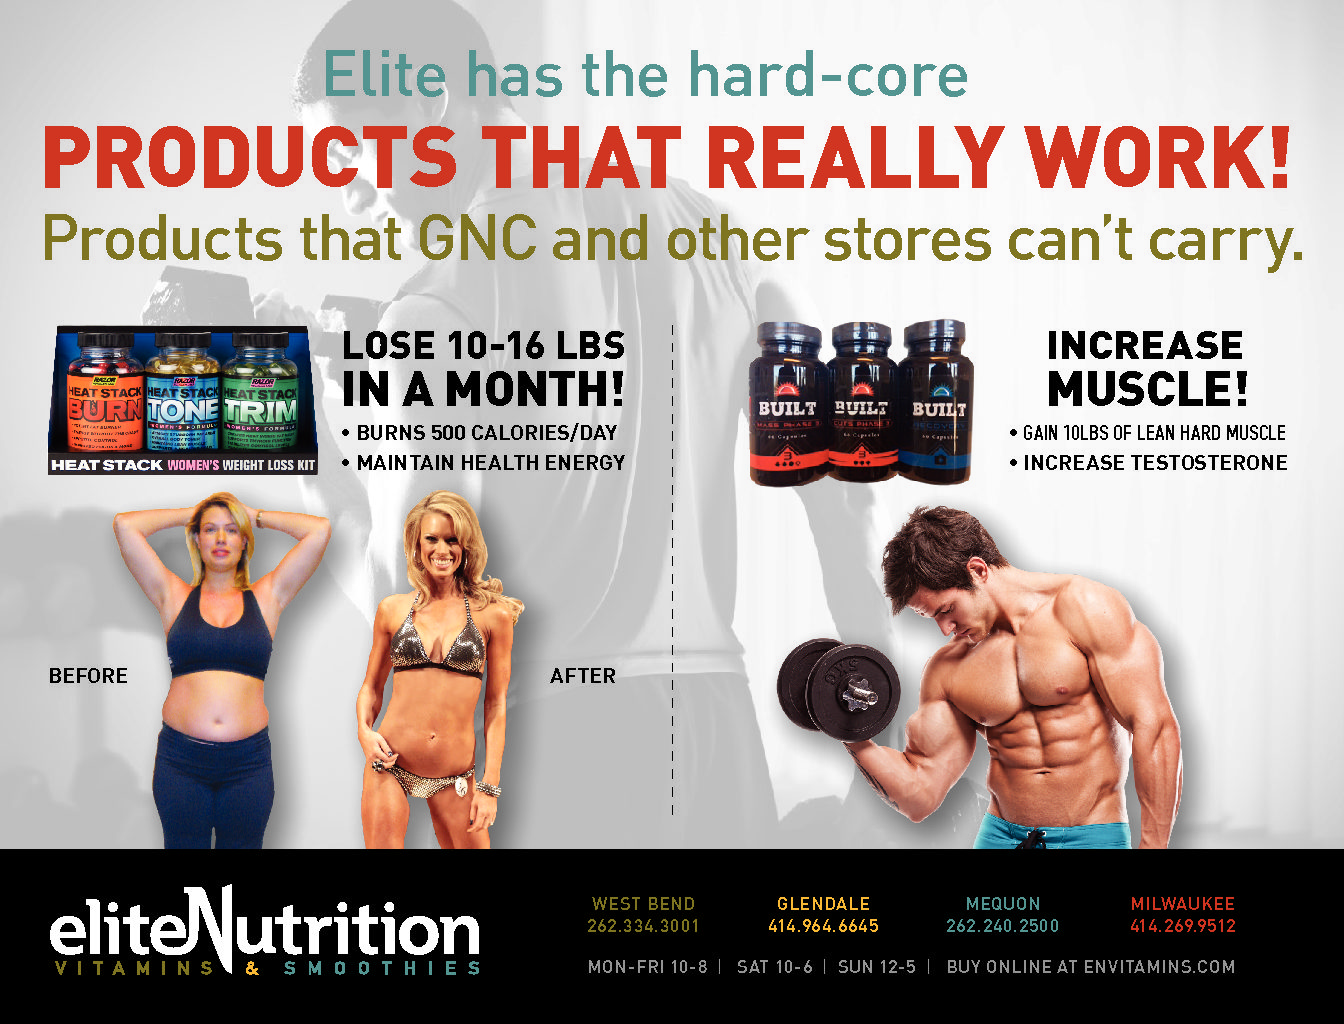 Elite Nutrition can sell the hard-core supplements that other stores cannot!